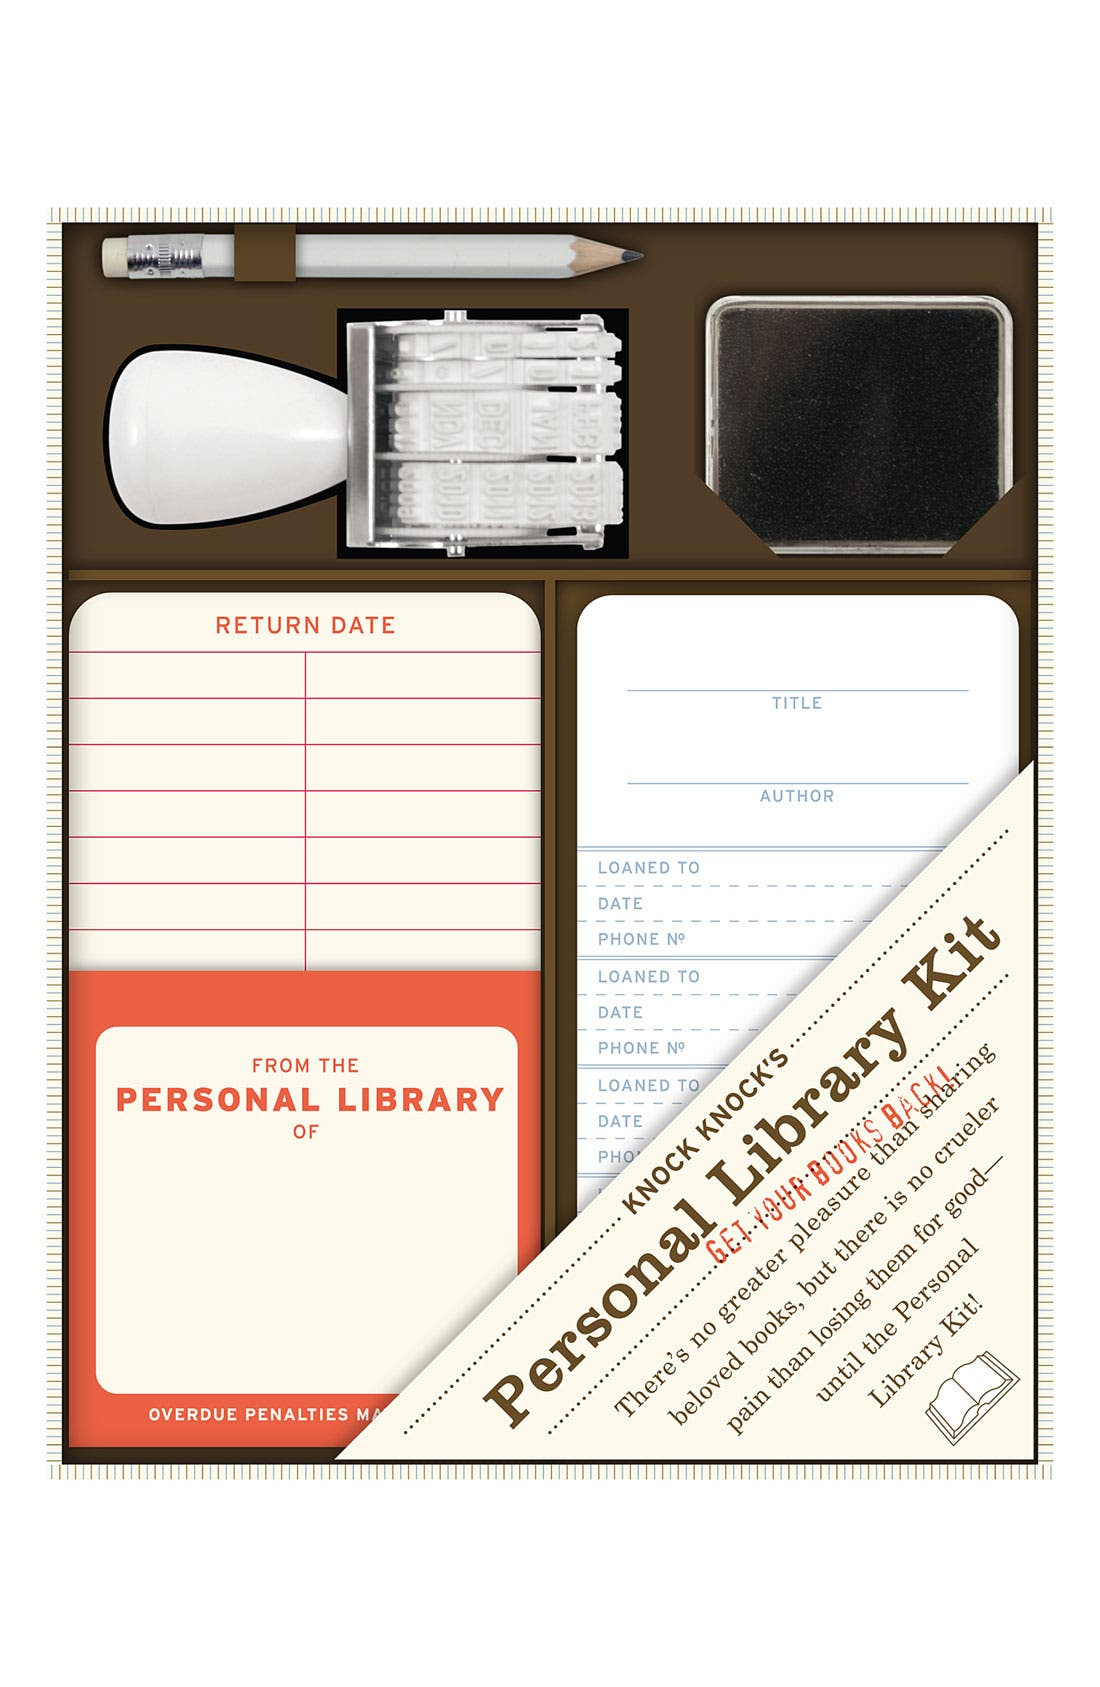 Alternate Image 1 Selected - Knock Knock Personal Library Kit